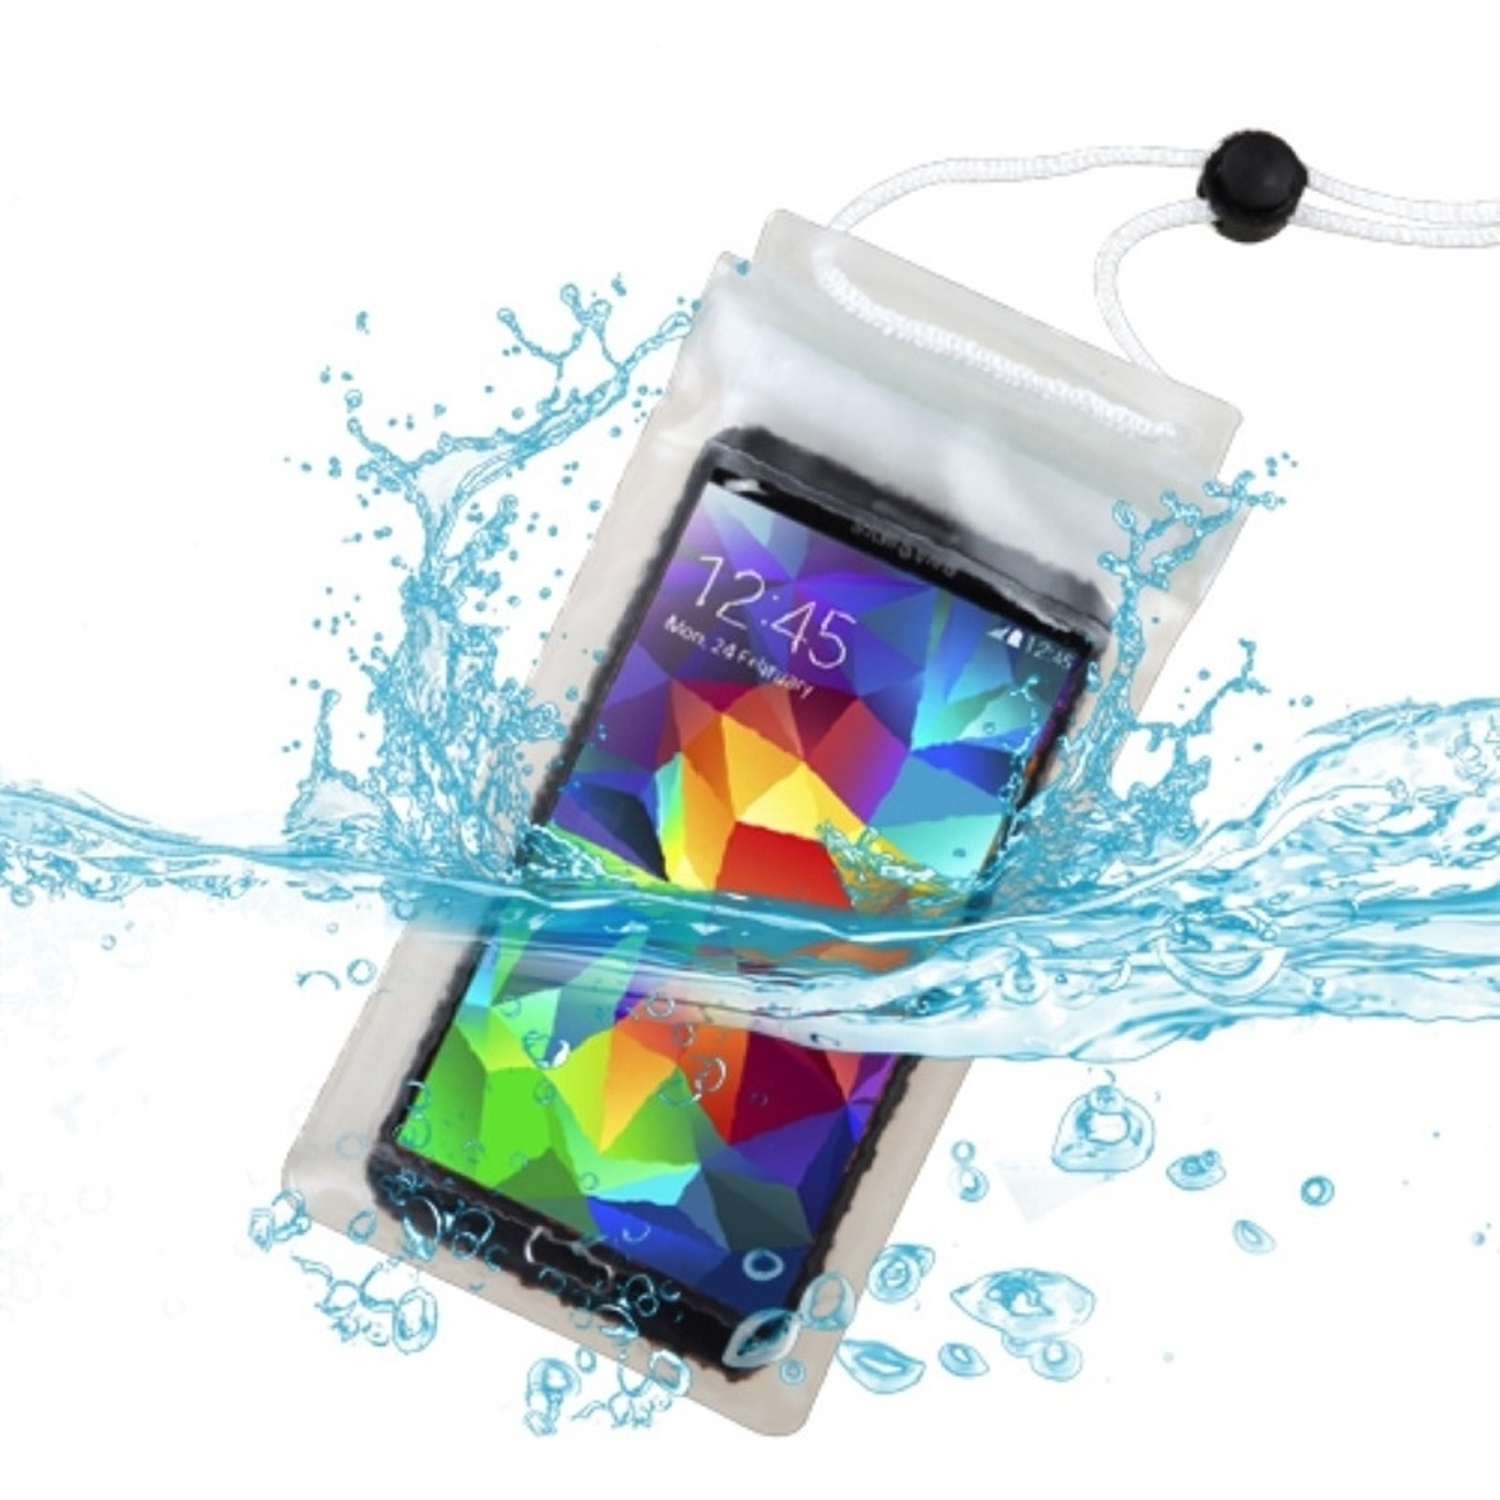 Insten Universal T-Clear Waterproof Dry Bag Pouch Case With Lanyard For Cell Mobile Phone Smartphone (Size: 6.5 x 3.12 inch)